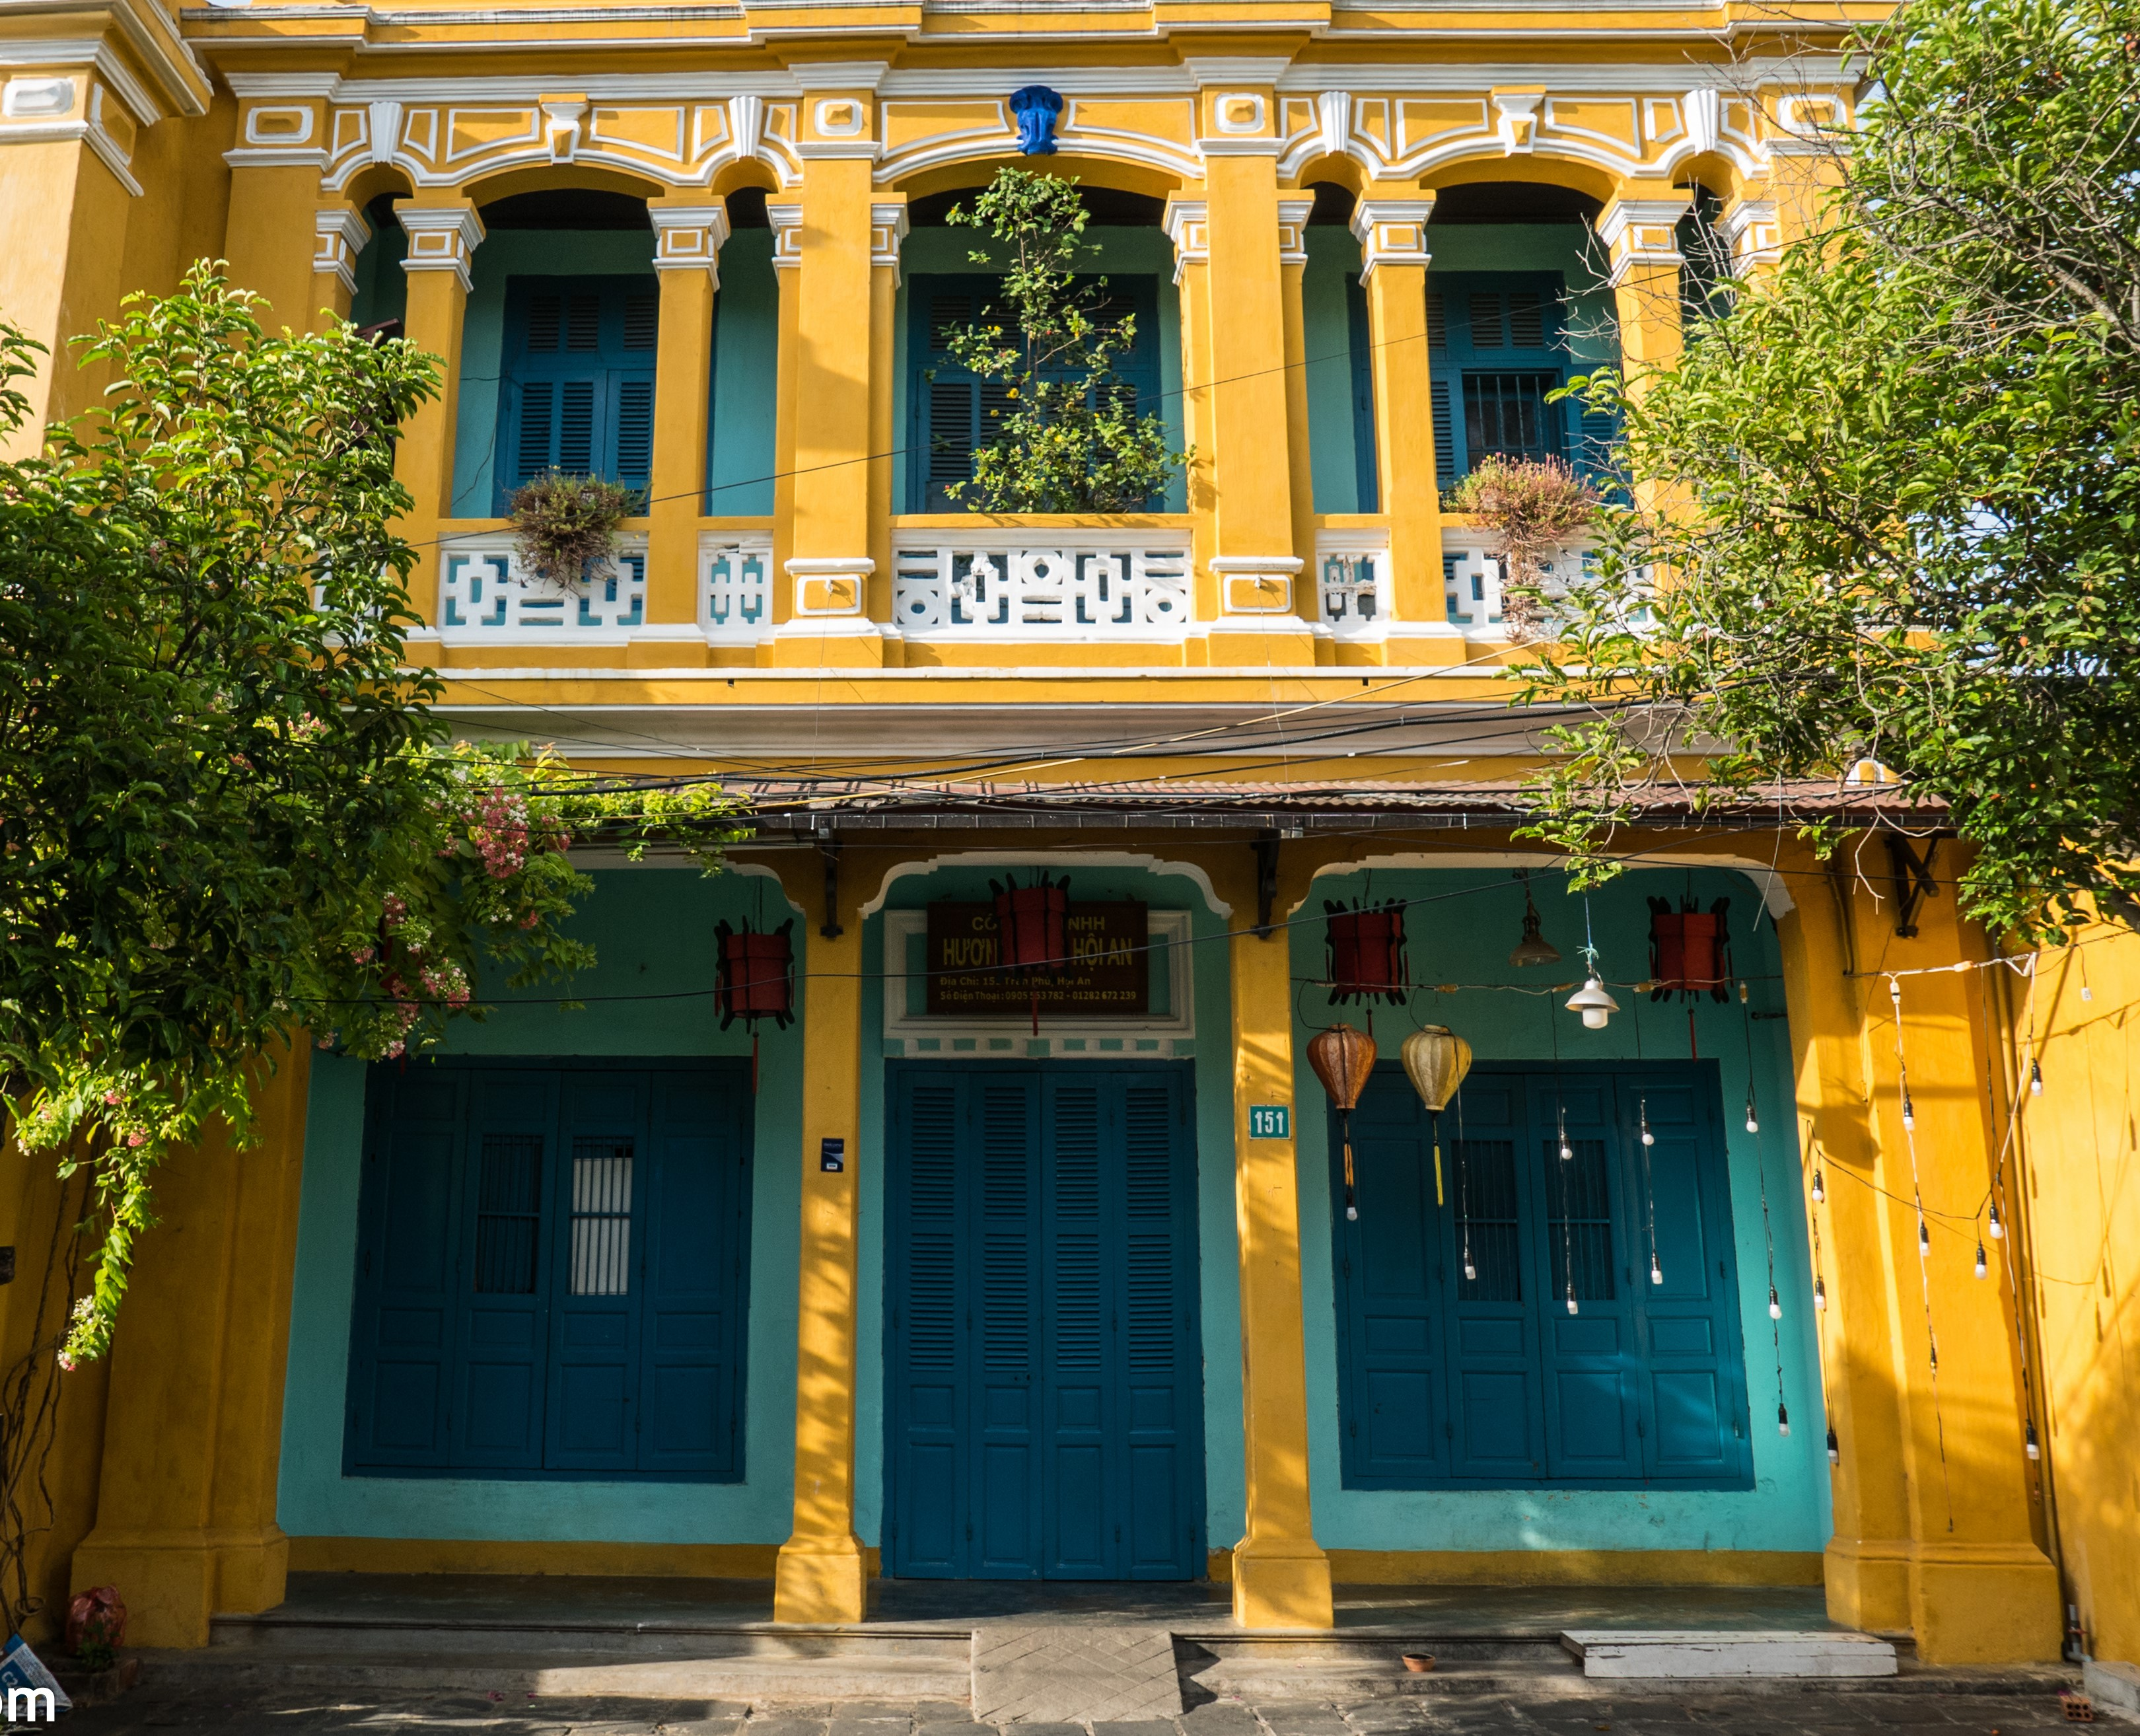 French style architecture in Hoi An